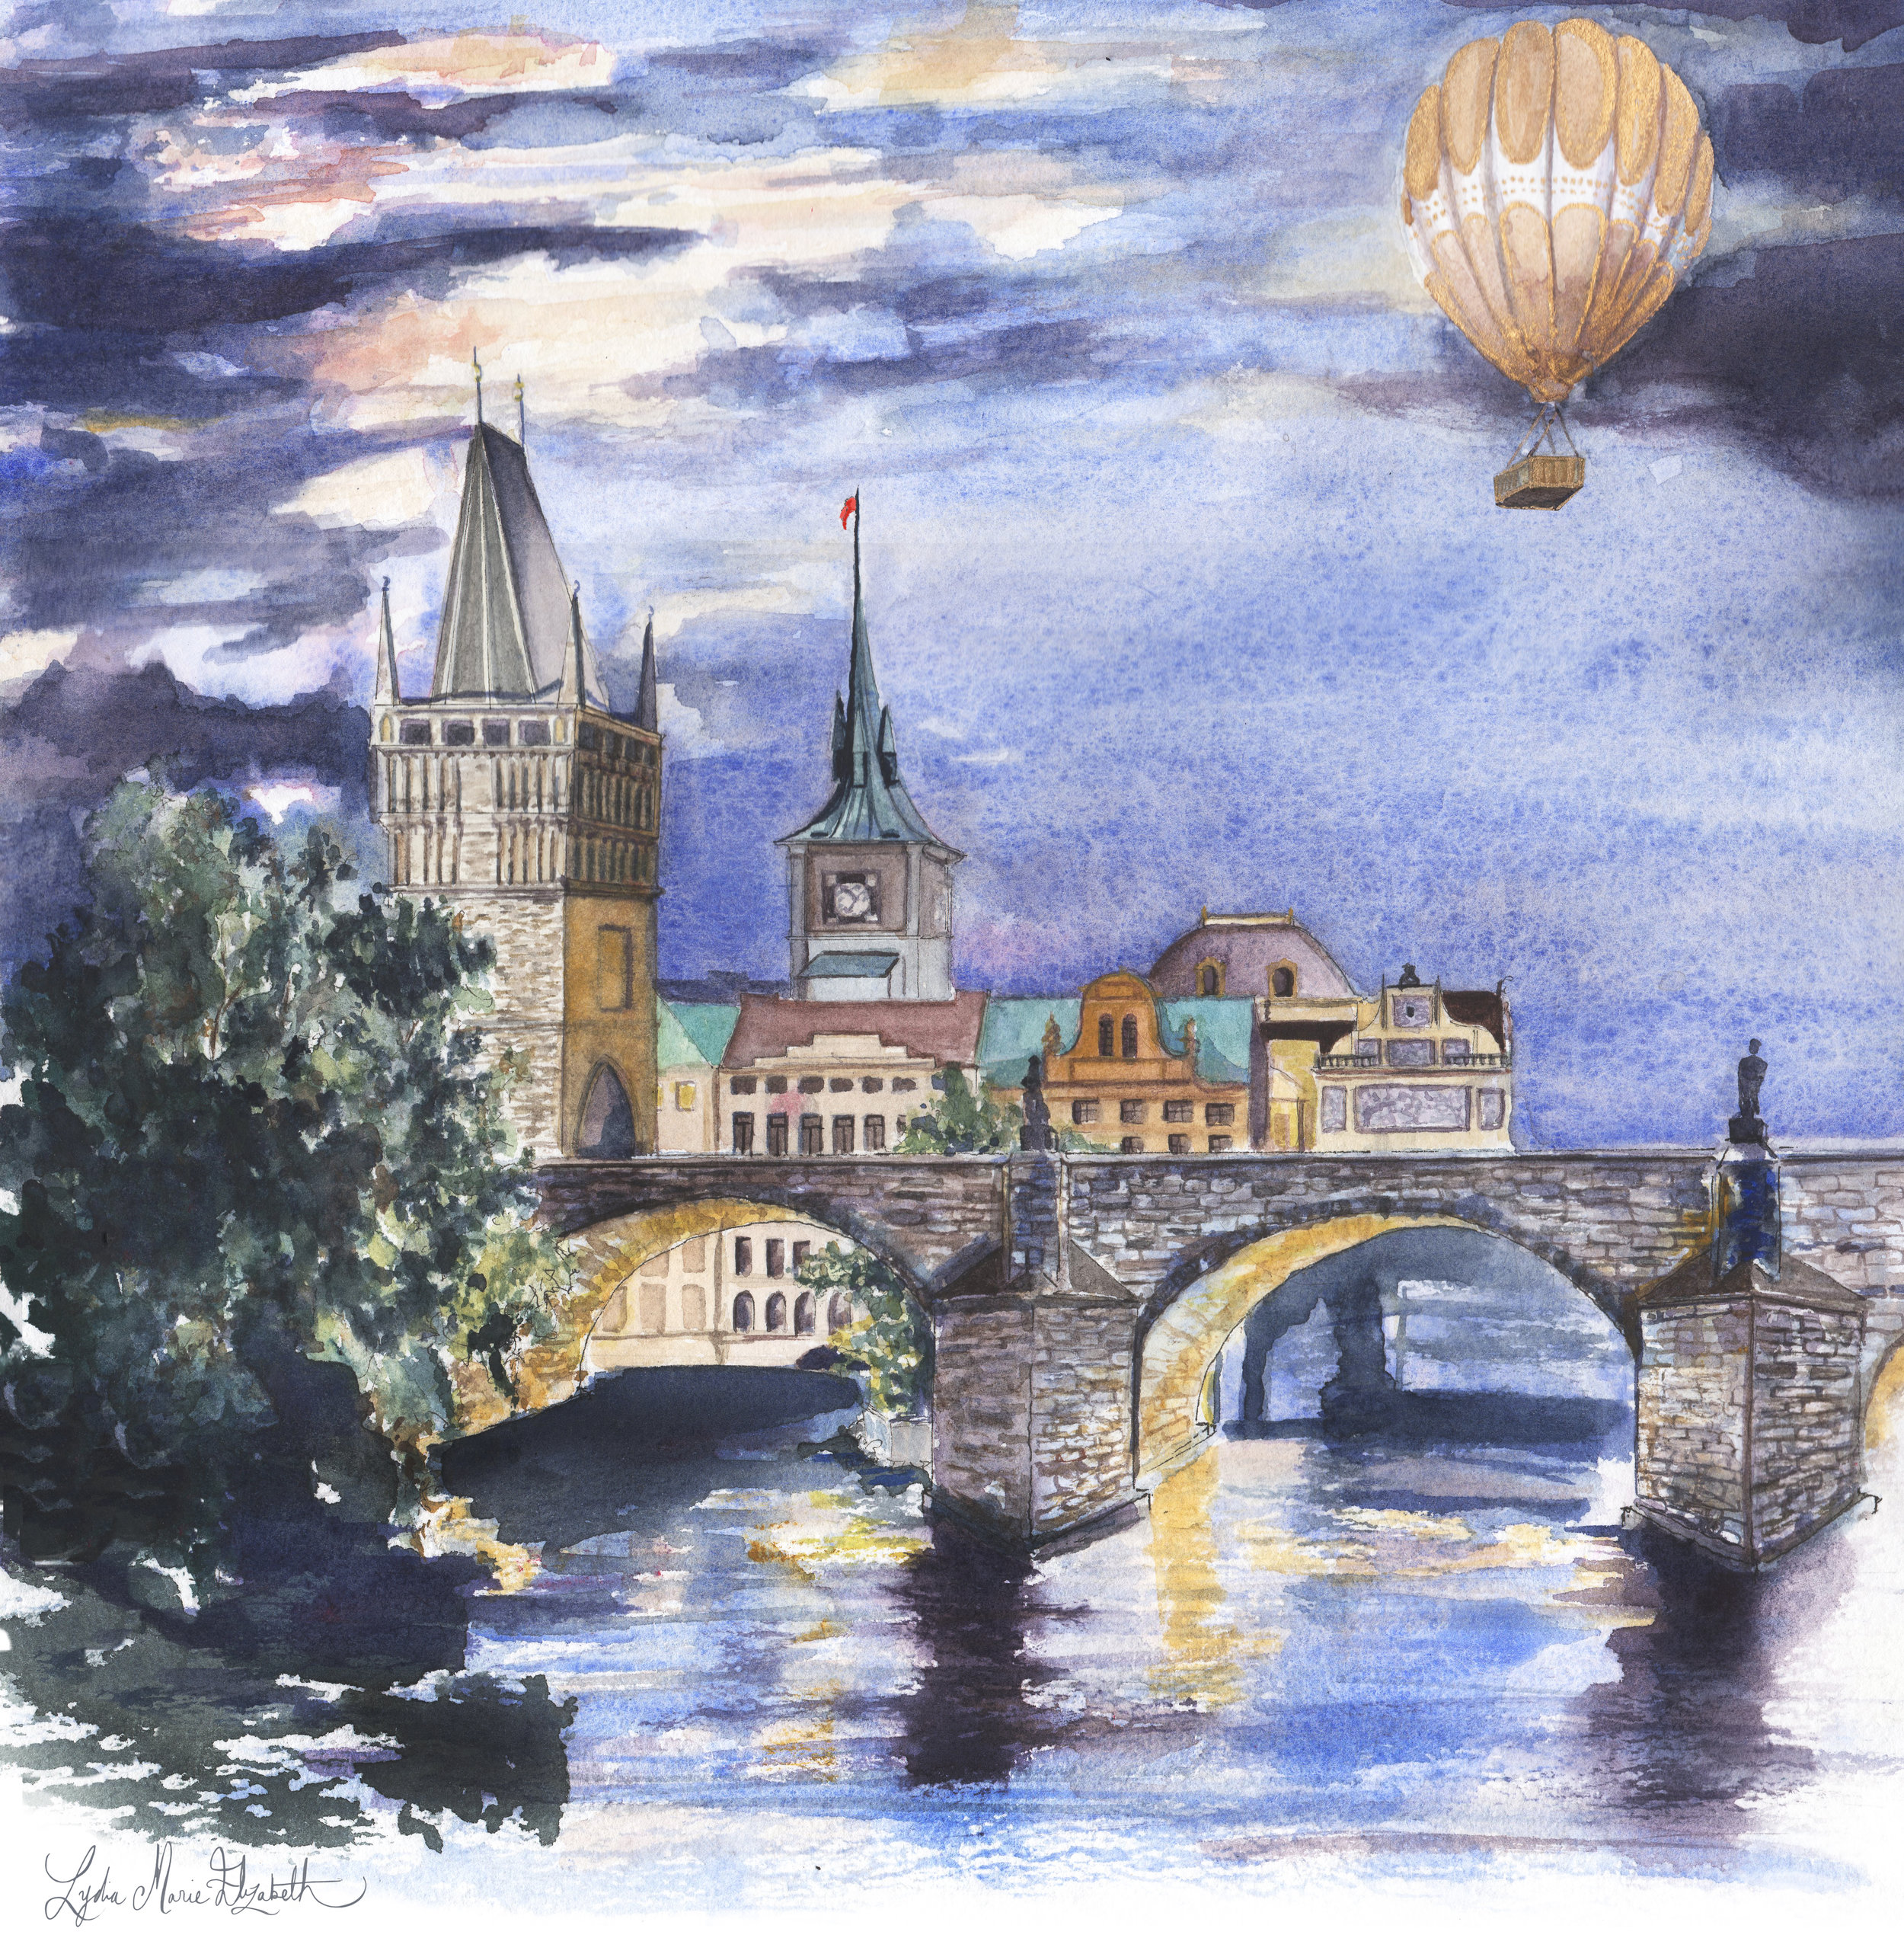 Lydia Marie Elizabeth Budapest city portrait at night with air balloon